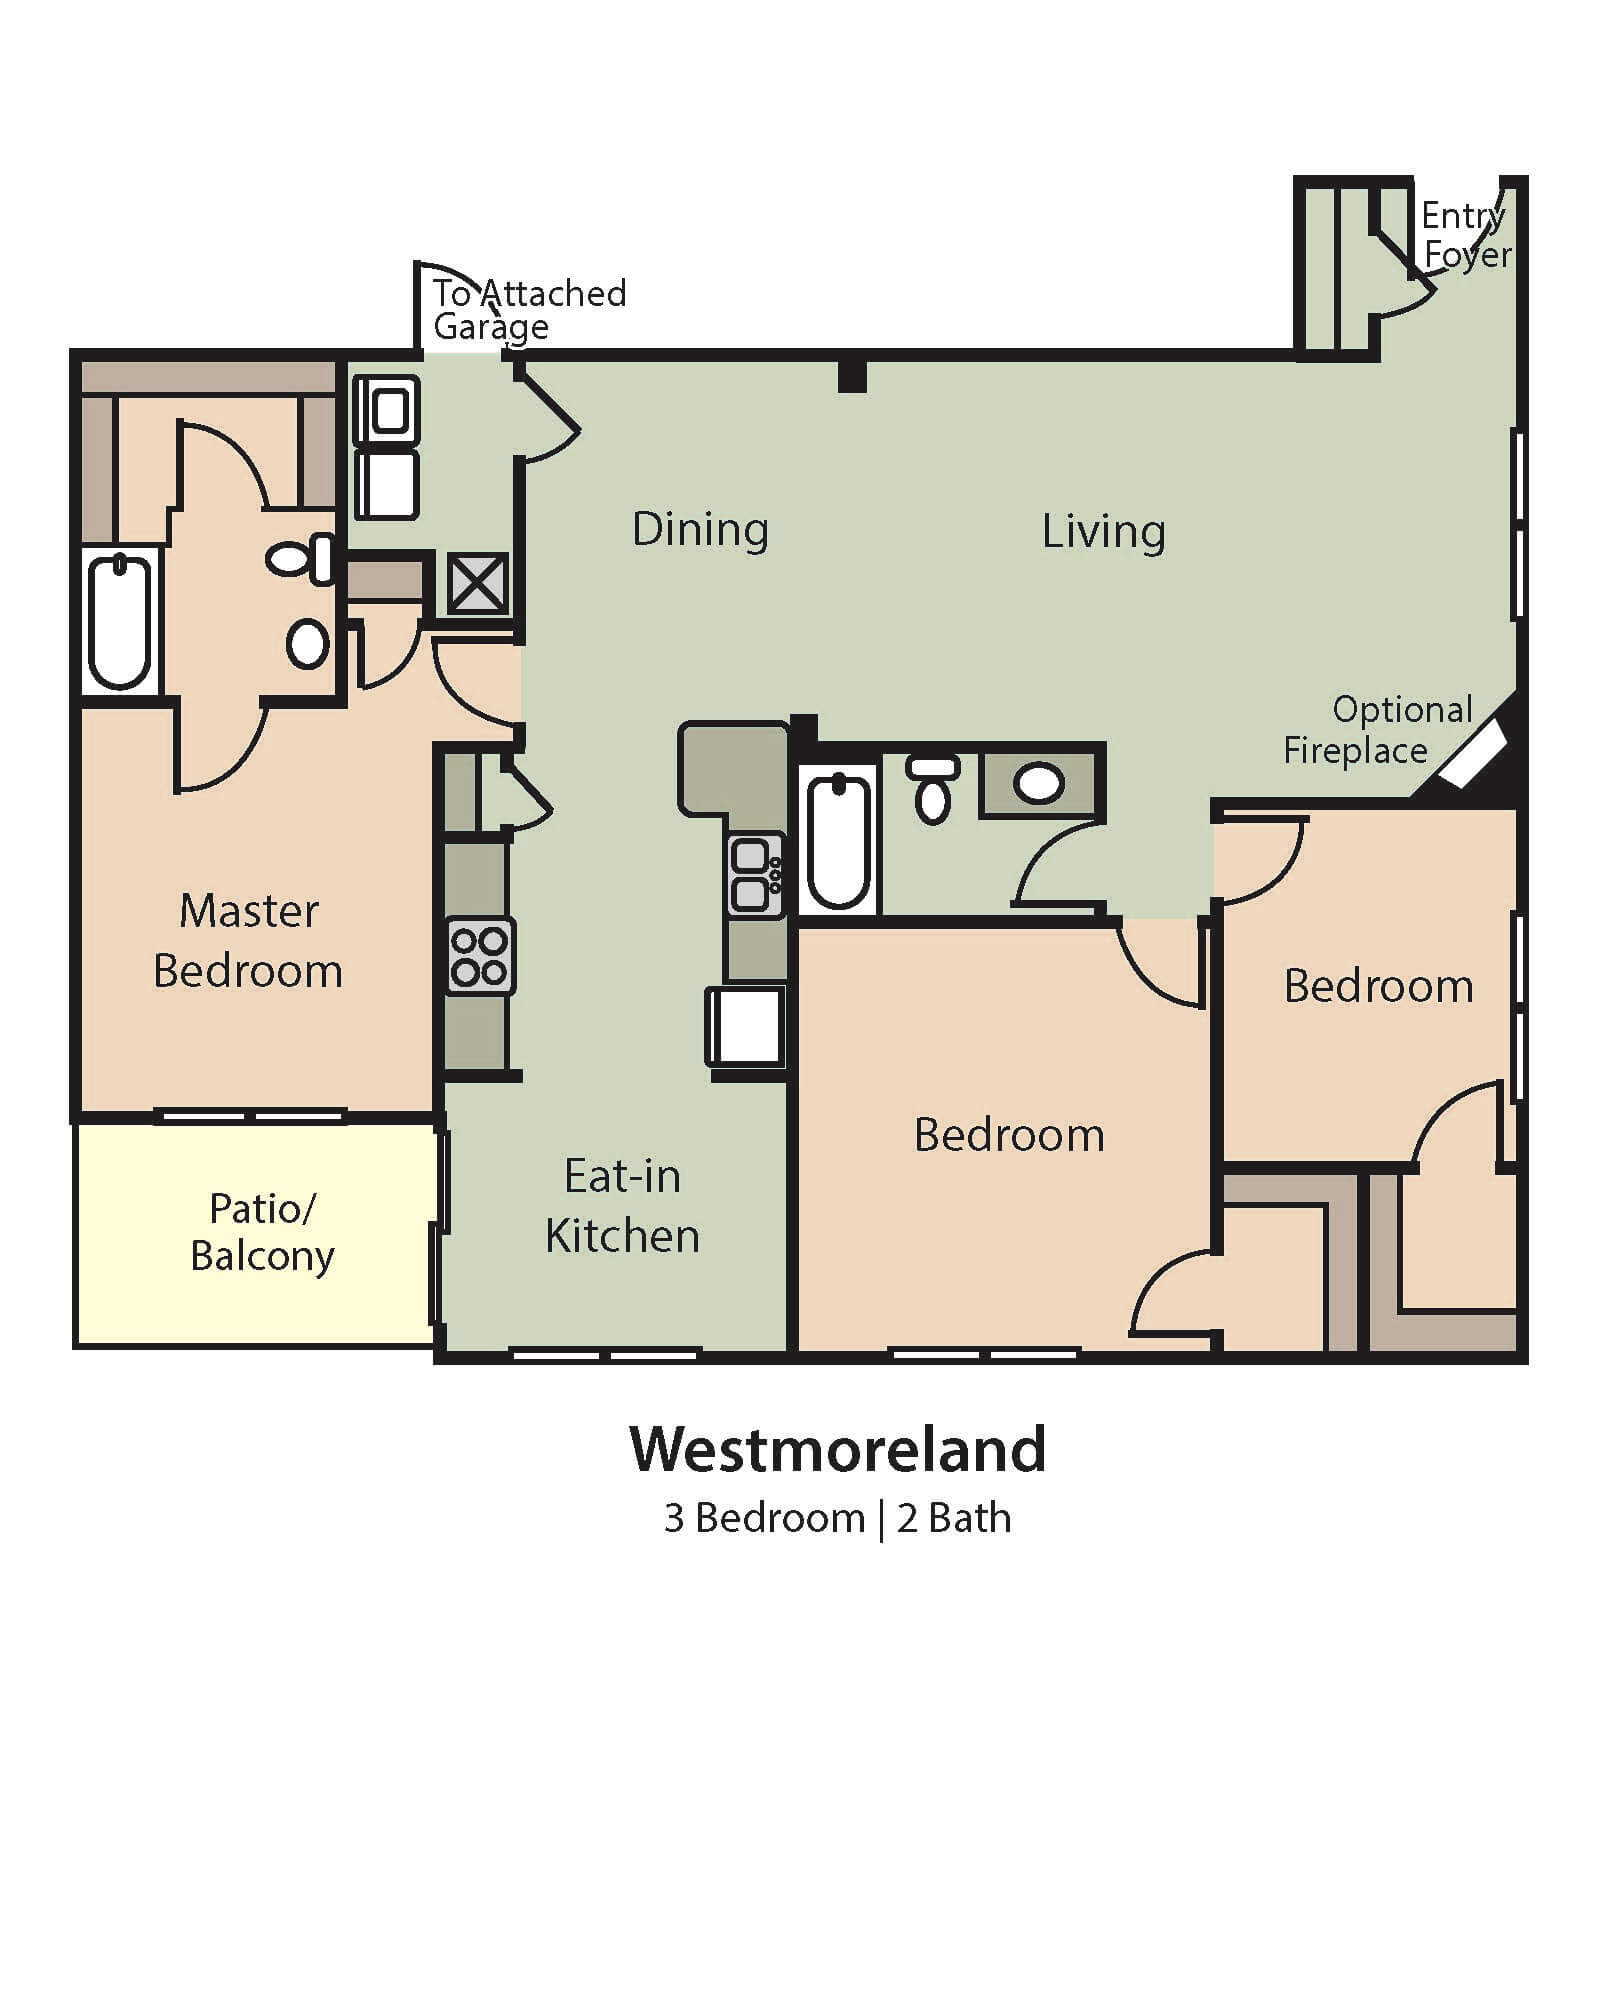 Westmoreland downstairs floor plan, 3 Bedrooms, 2 Baths